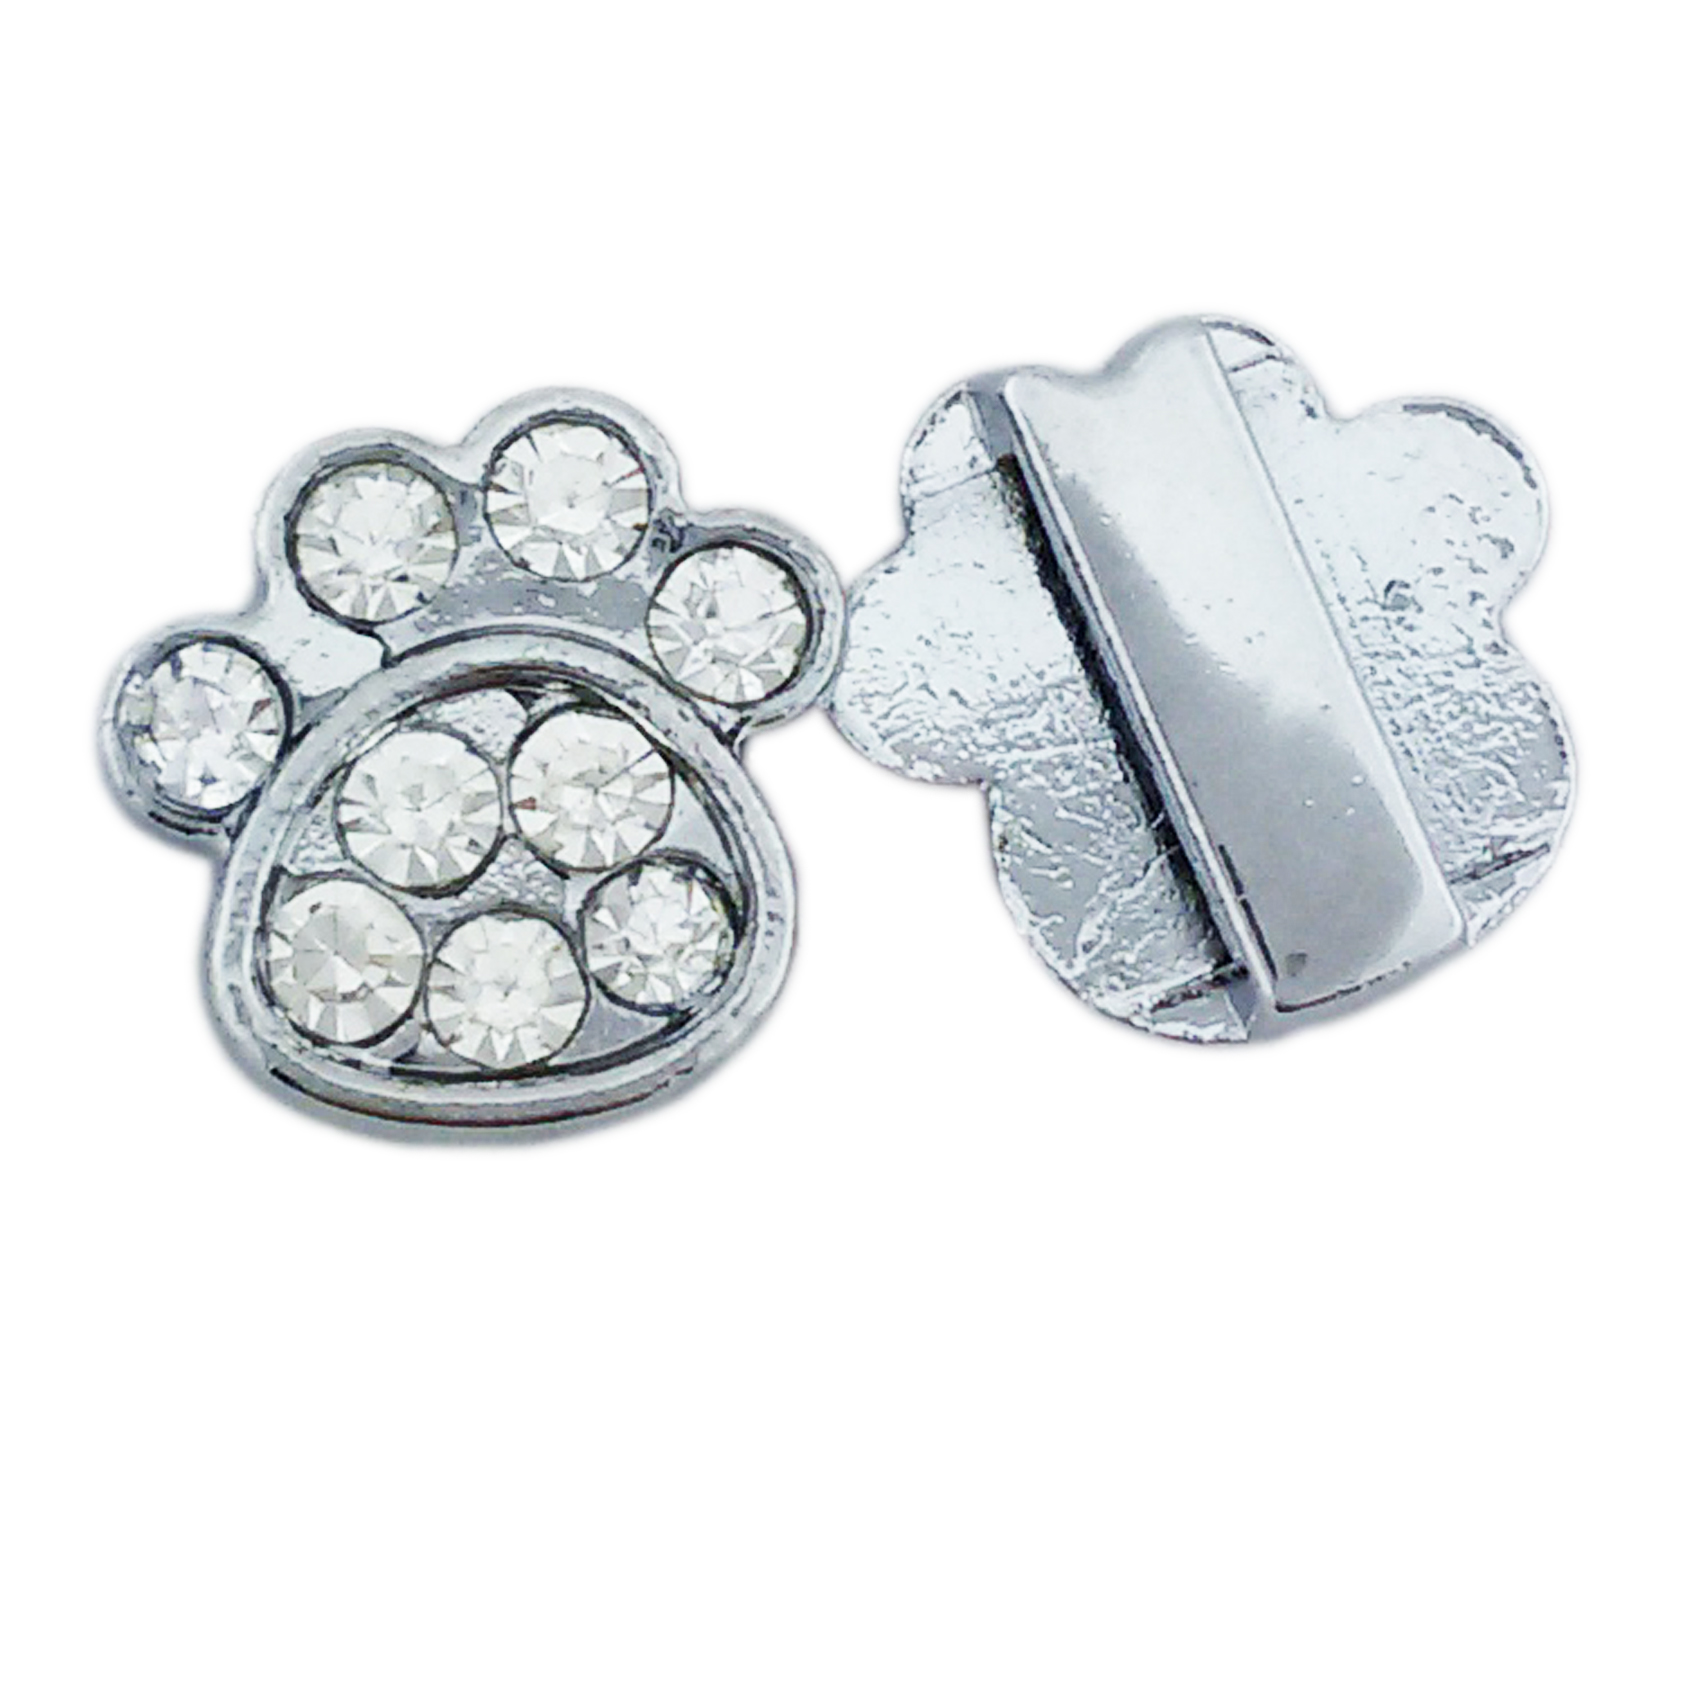 Pawprint Slide Charms Findings for Bracelet Collar Jewelry Making